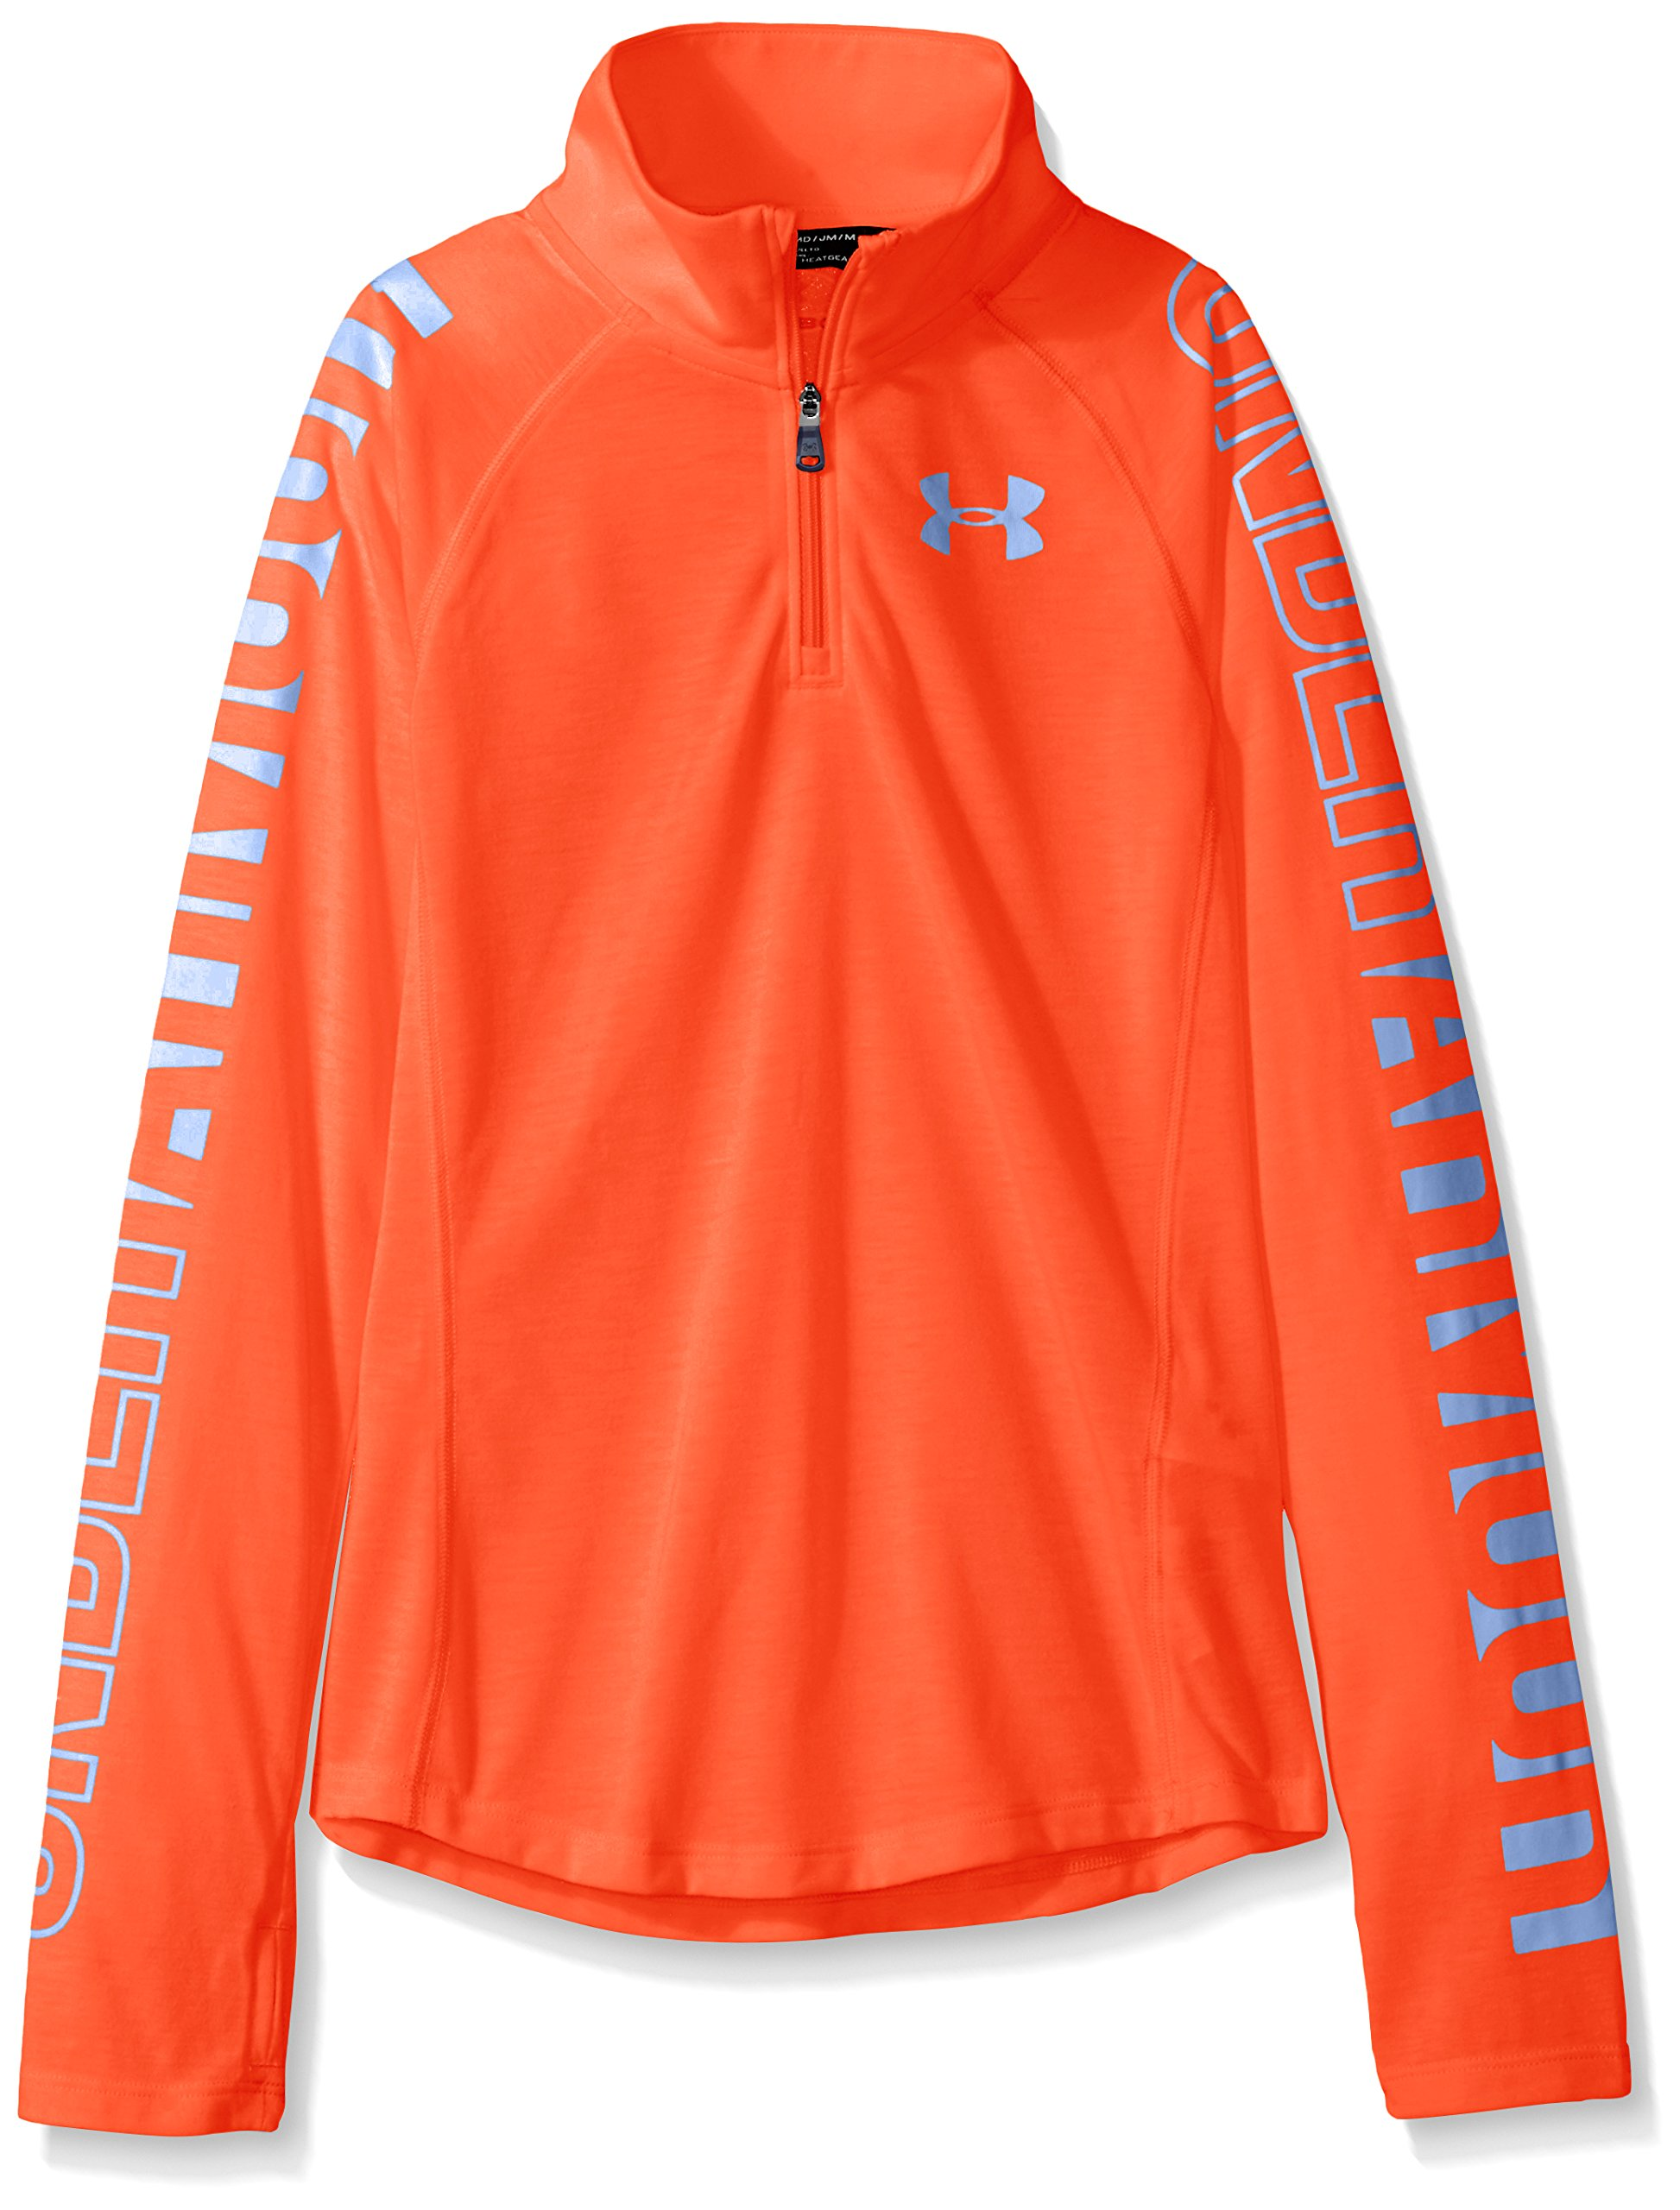 Under Armour Girls Thread borne 1/4 Zip Shirt, Neon Coral /Talc Blue, Youth X-Small